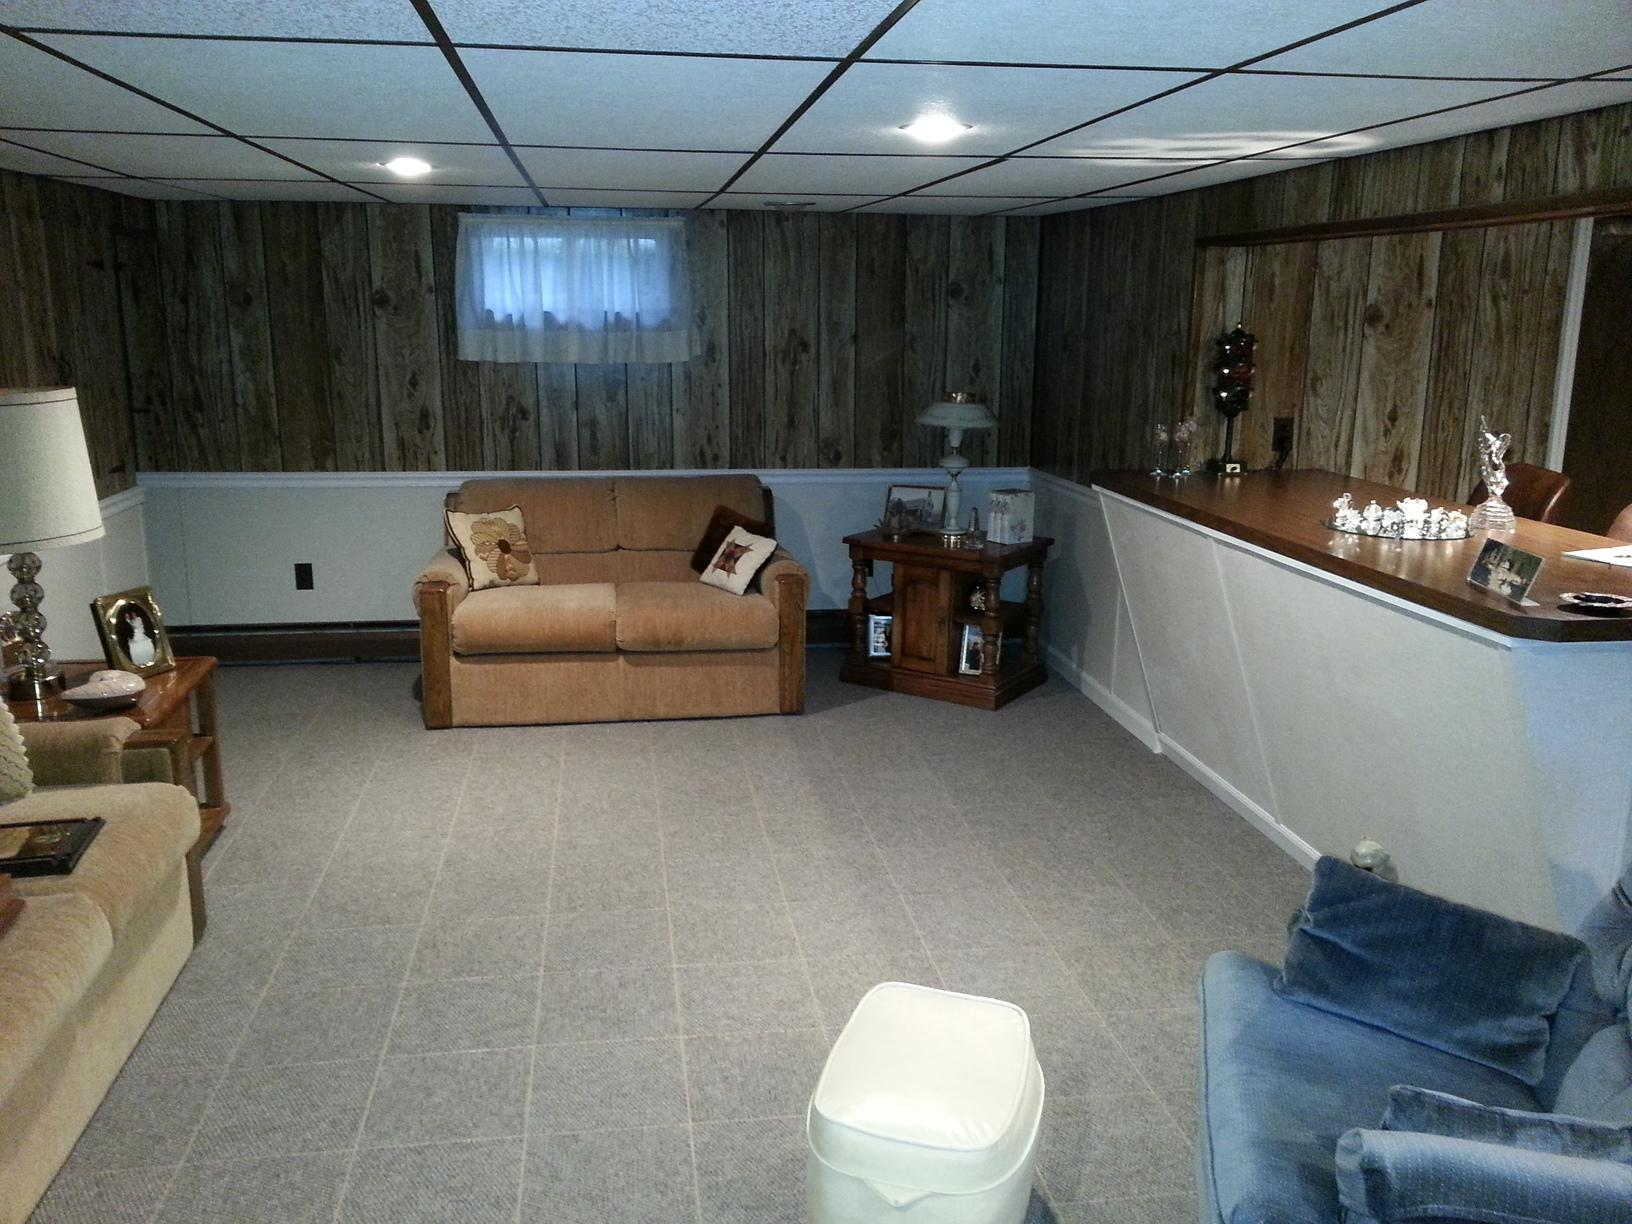 Brewer, Maine Basement Renovation & Waterproofing Project - After Photo